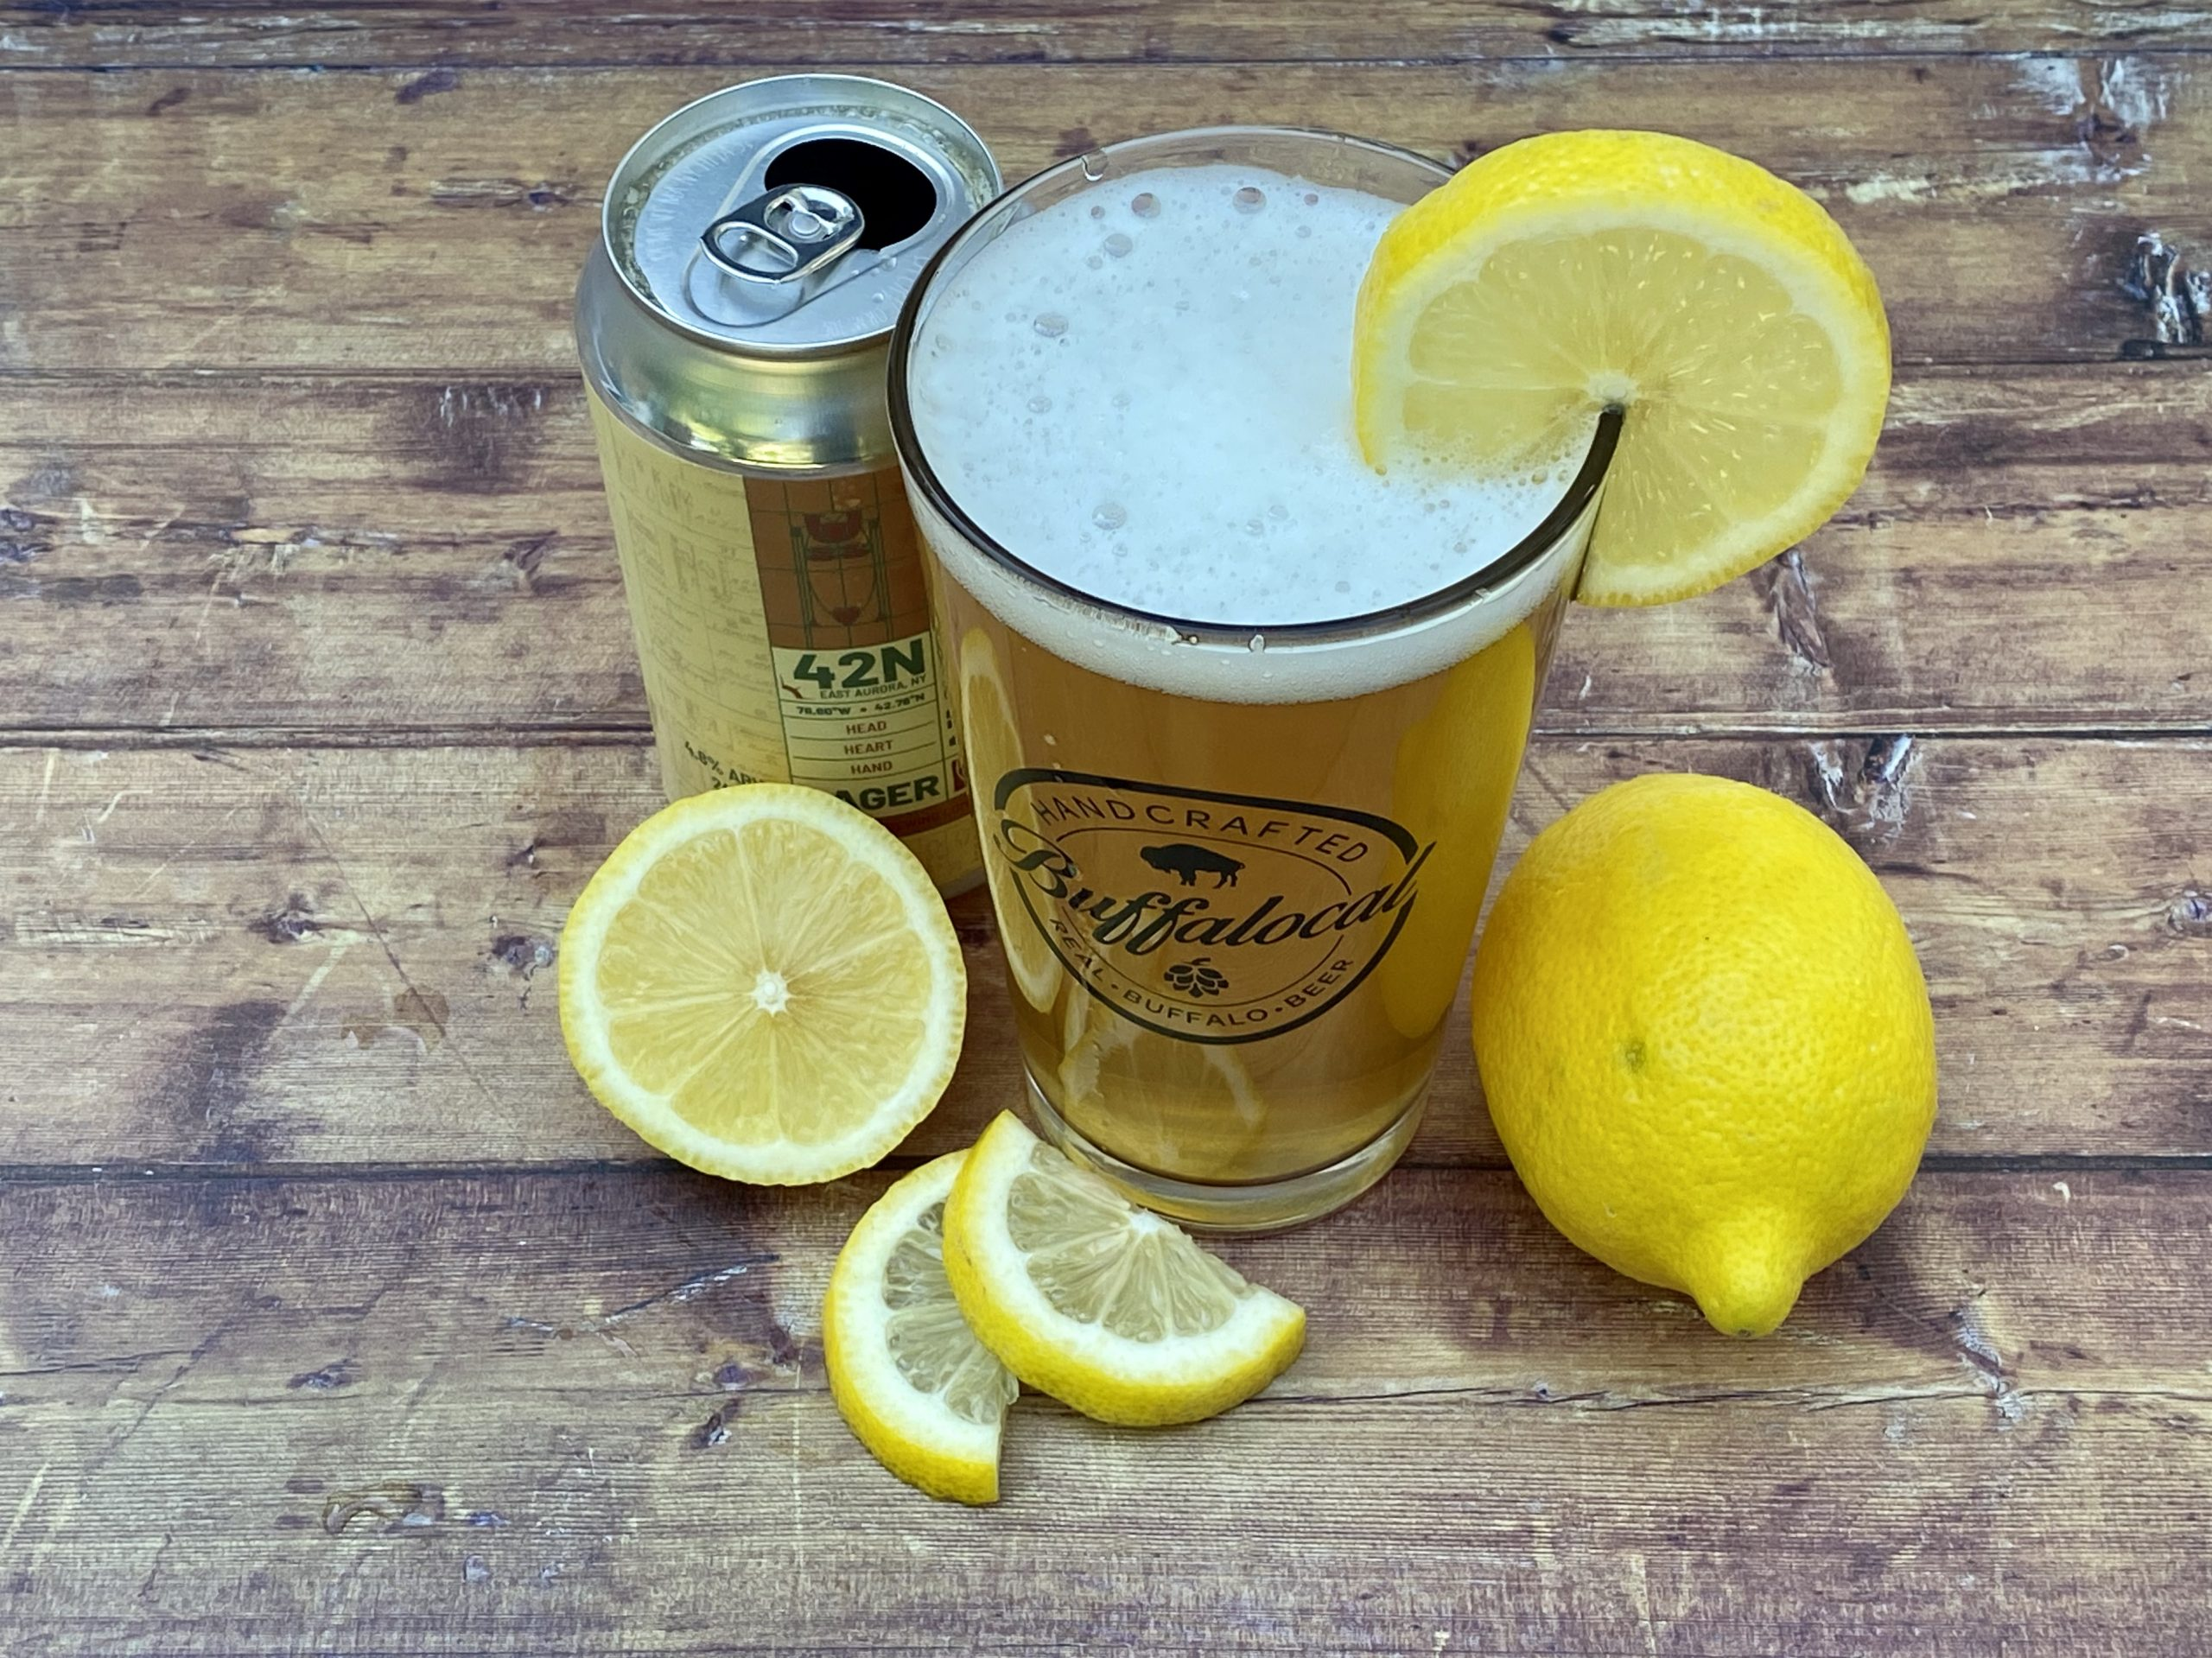 Buffalo craft lager radler